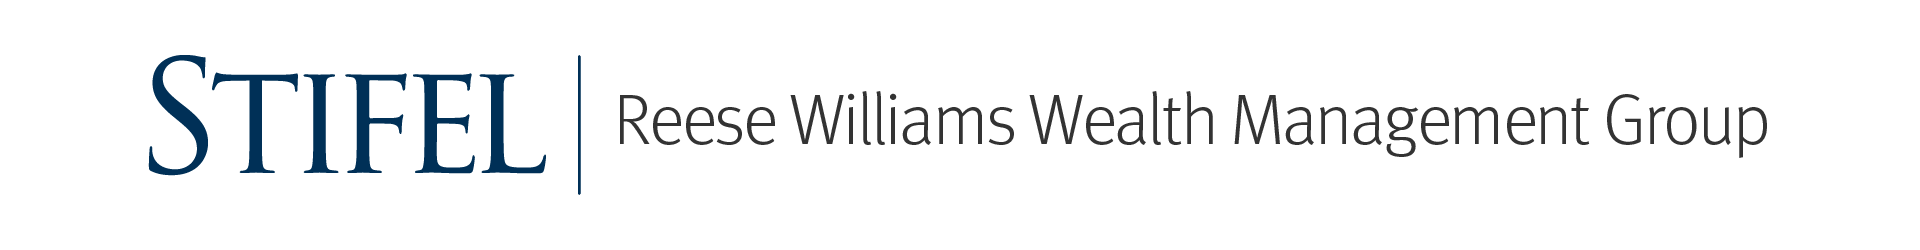 Reese Williams Wealth Management Group |  Sugar Land, Texas